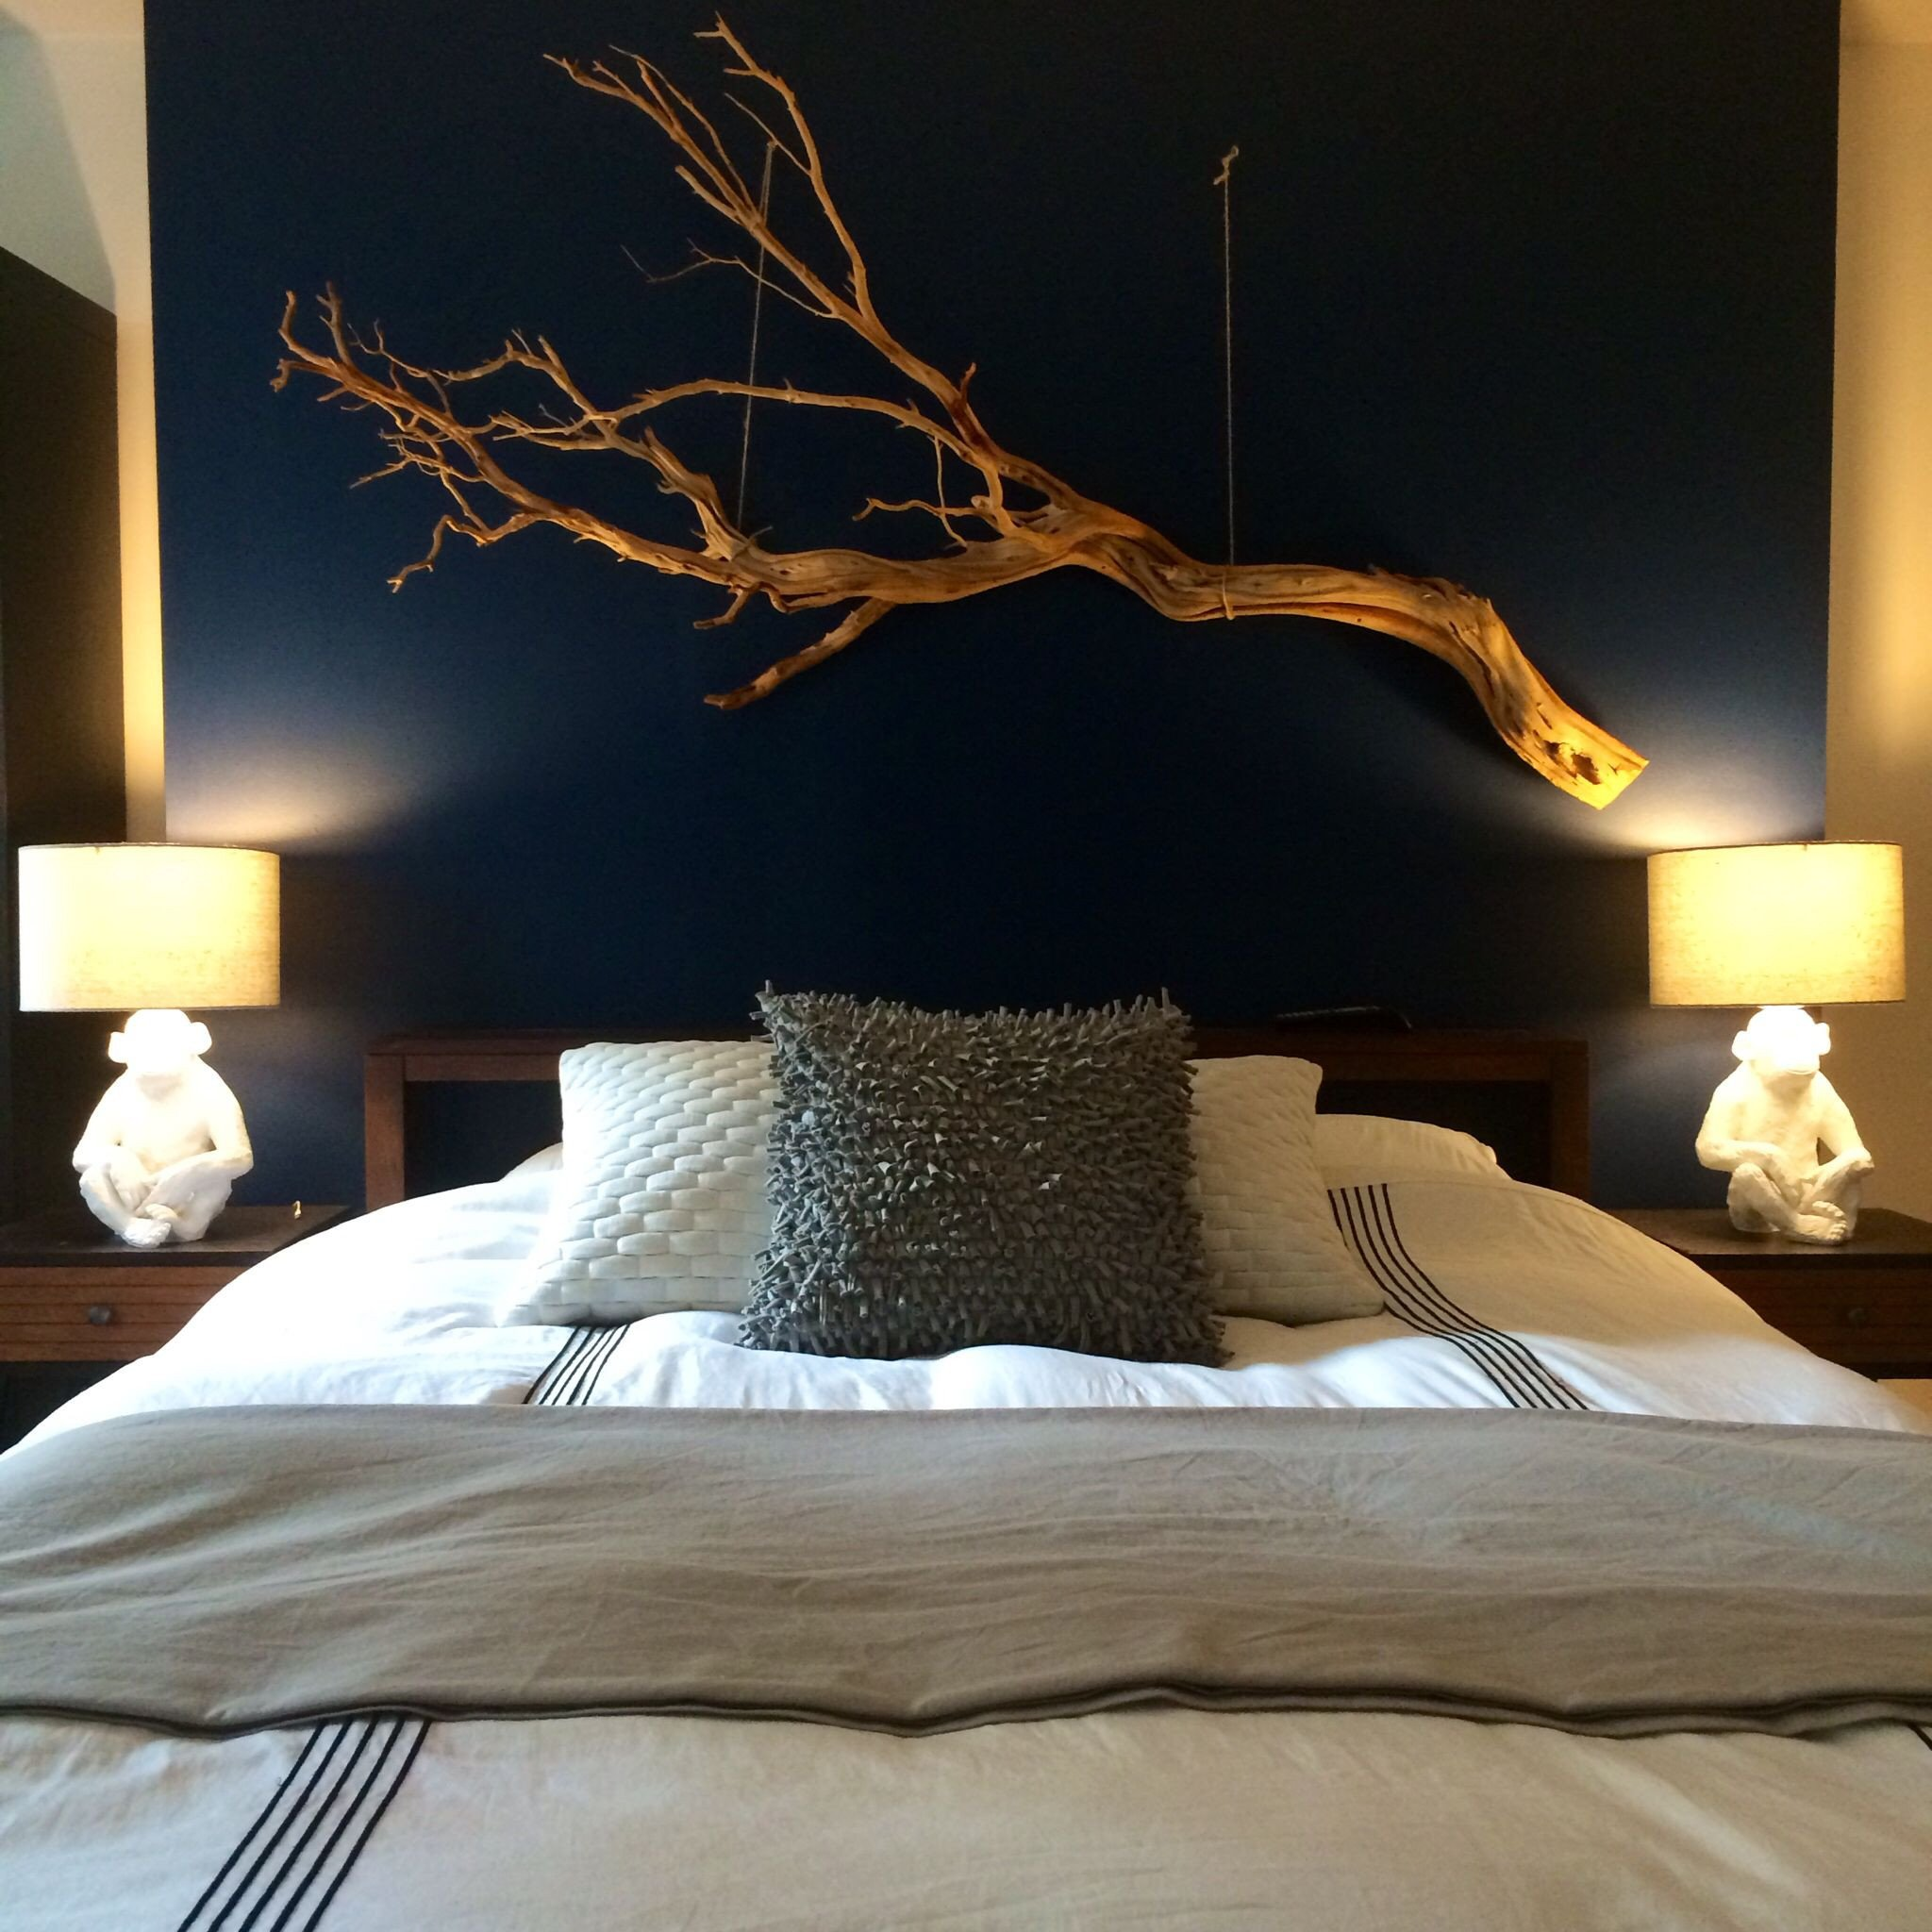 Over the Bed Wall Decor Fresh Driftwood Art Over Bed Renos Pinterest